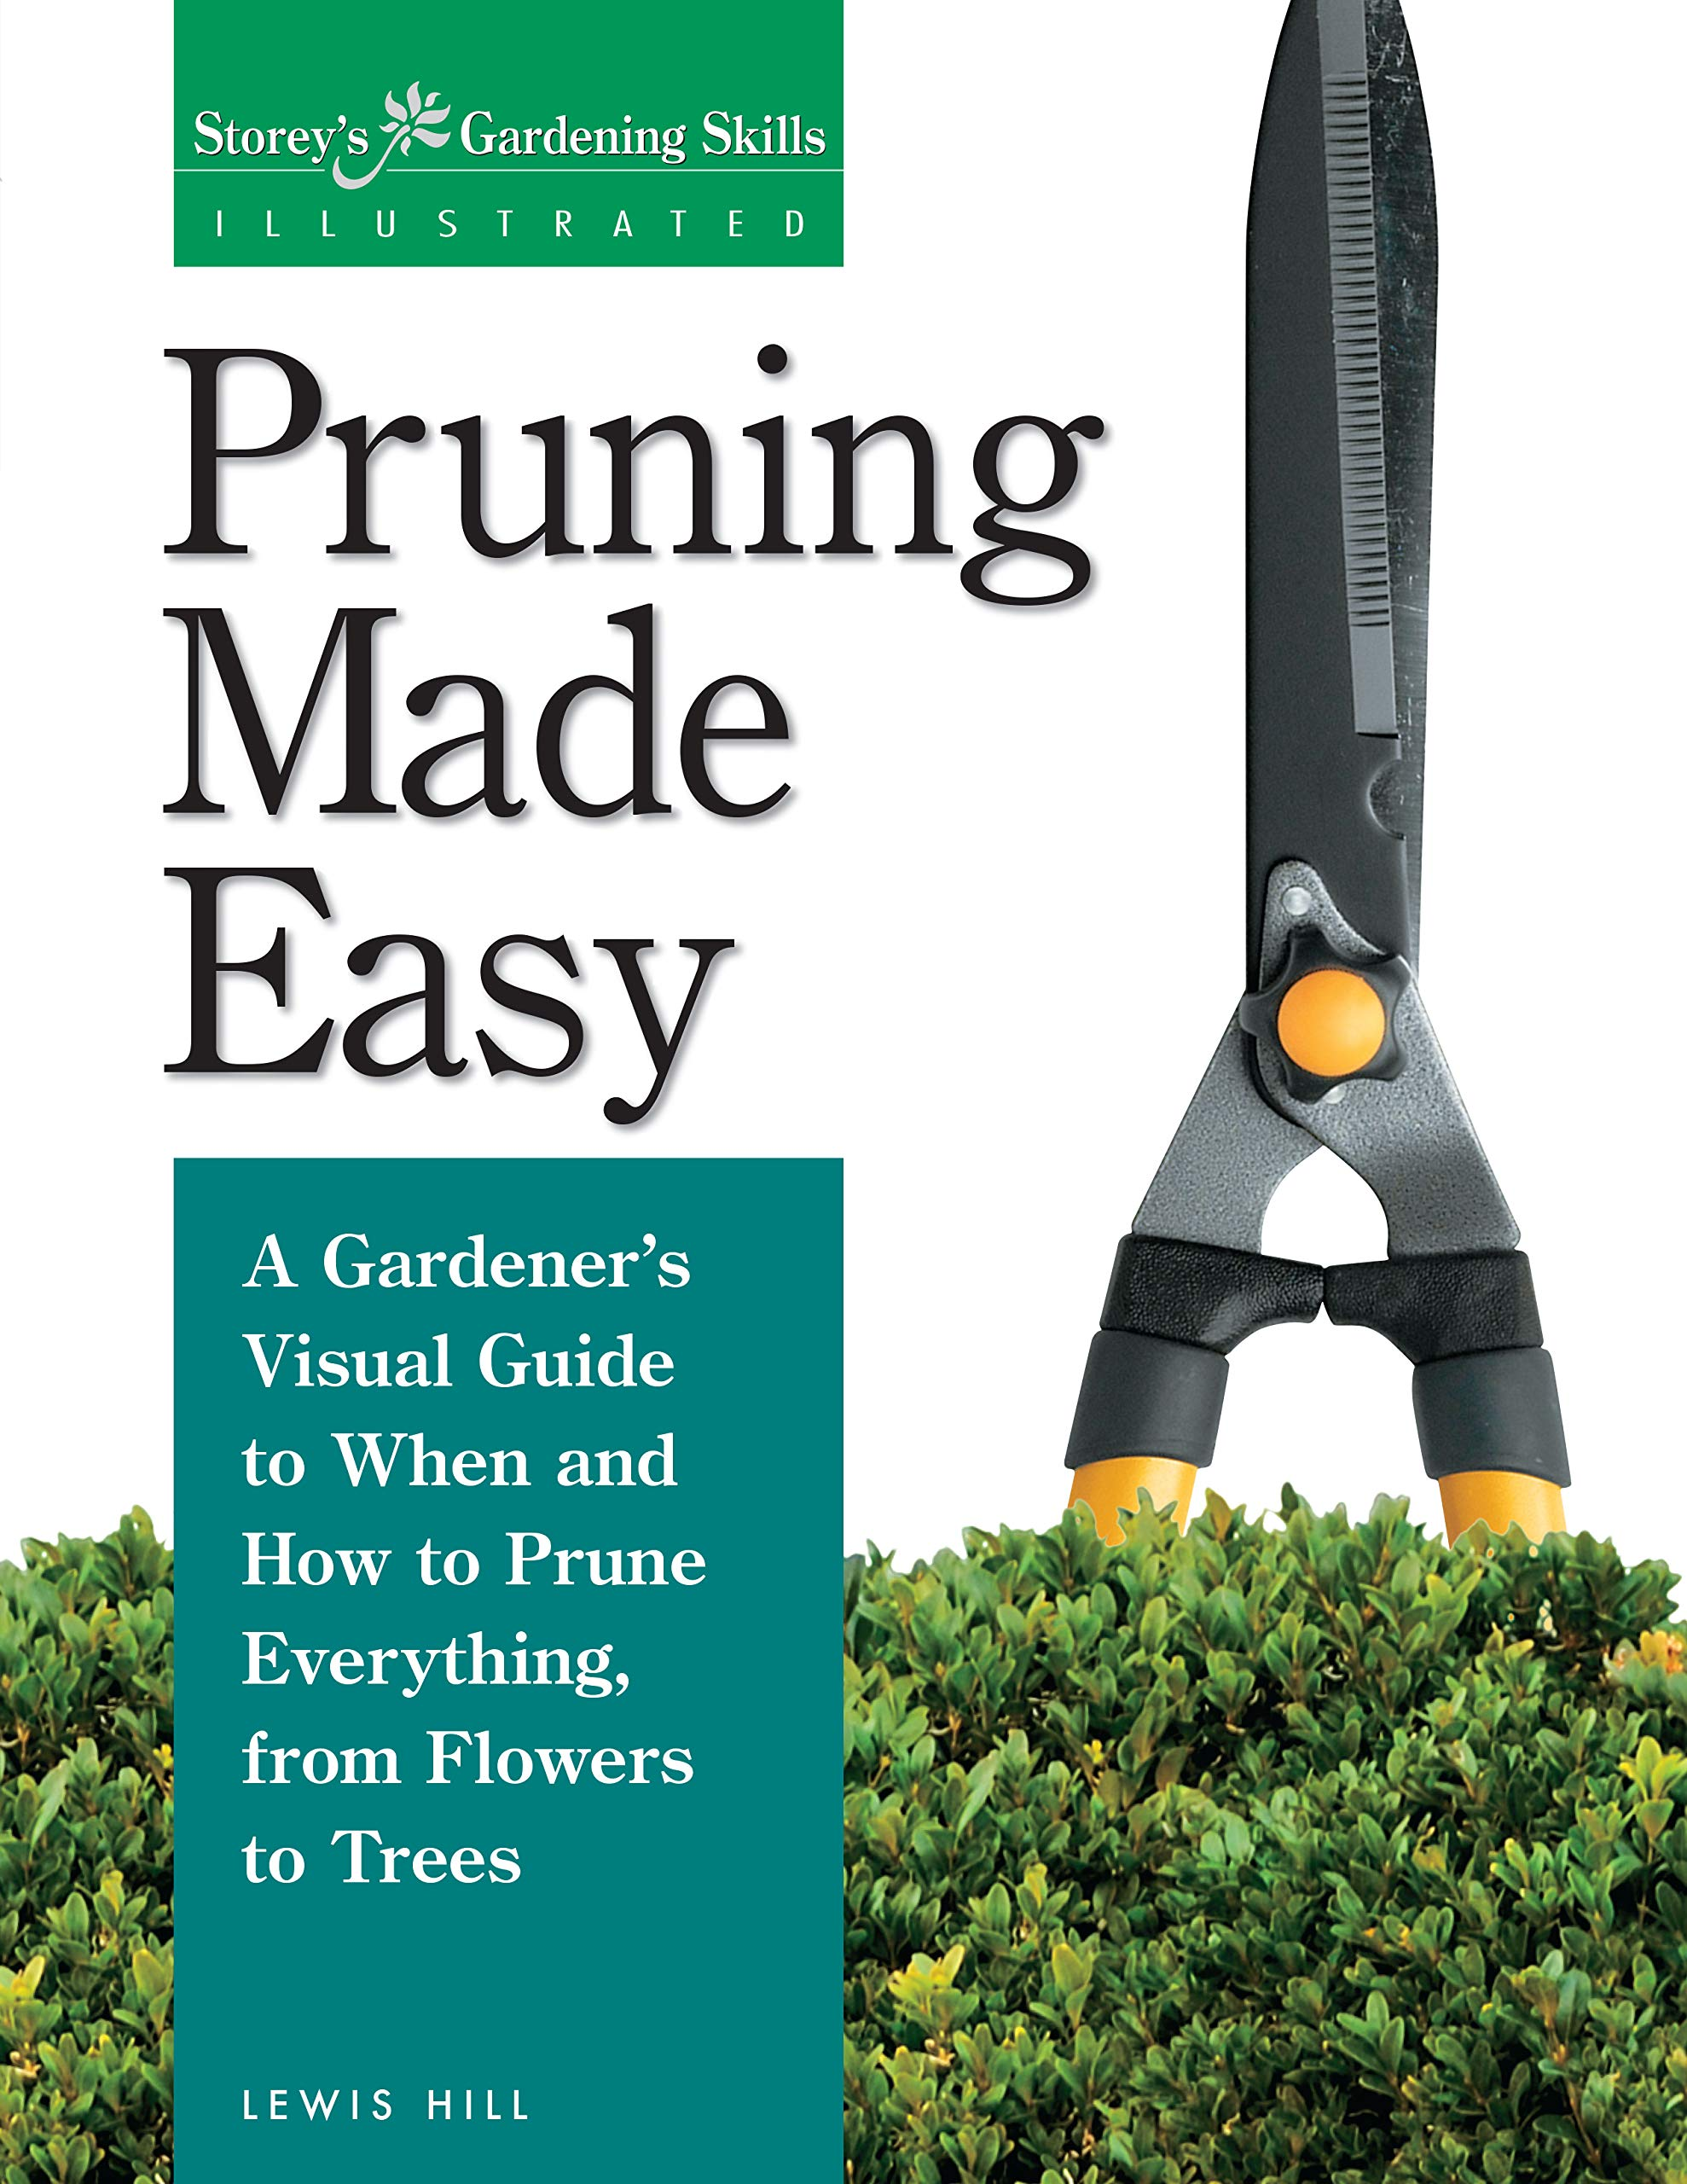 Pruning Made Easy: A Gardener's Visual Guide to When and How to Prune Everything, from Flowers to Trees (Storey's Gardening Skills Illustrated Series) by Storey Publishing, LLC